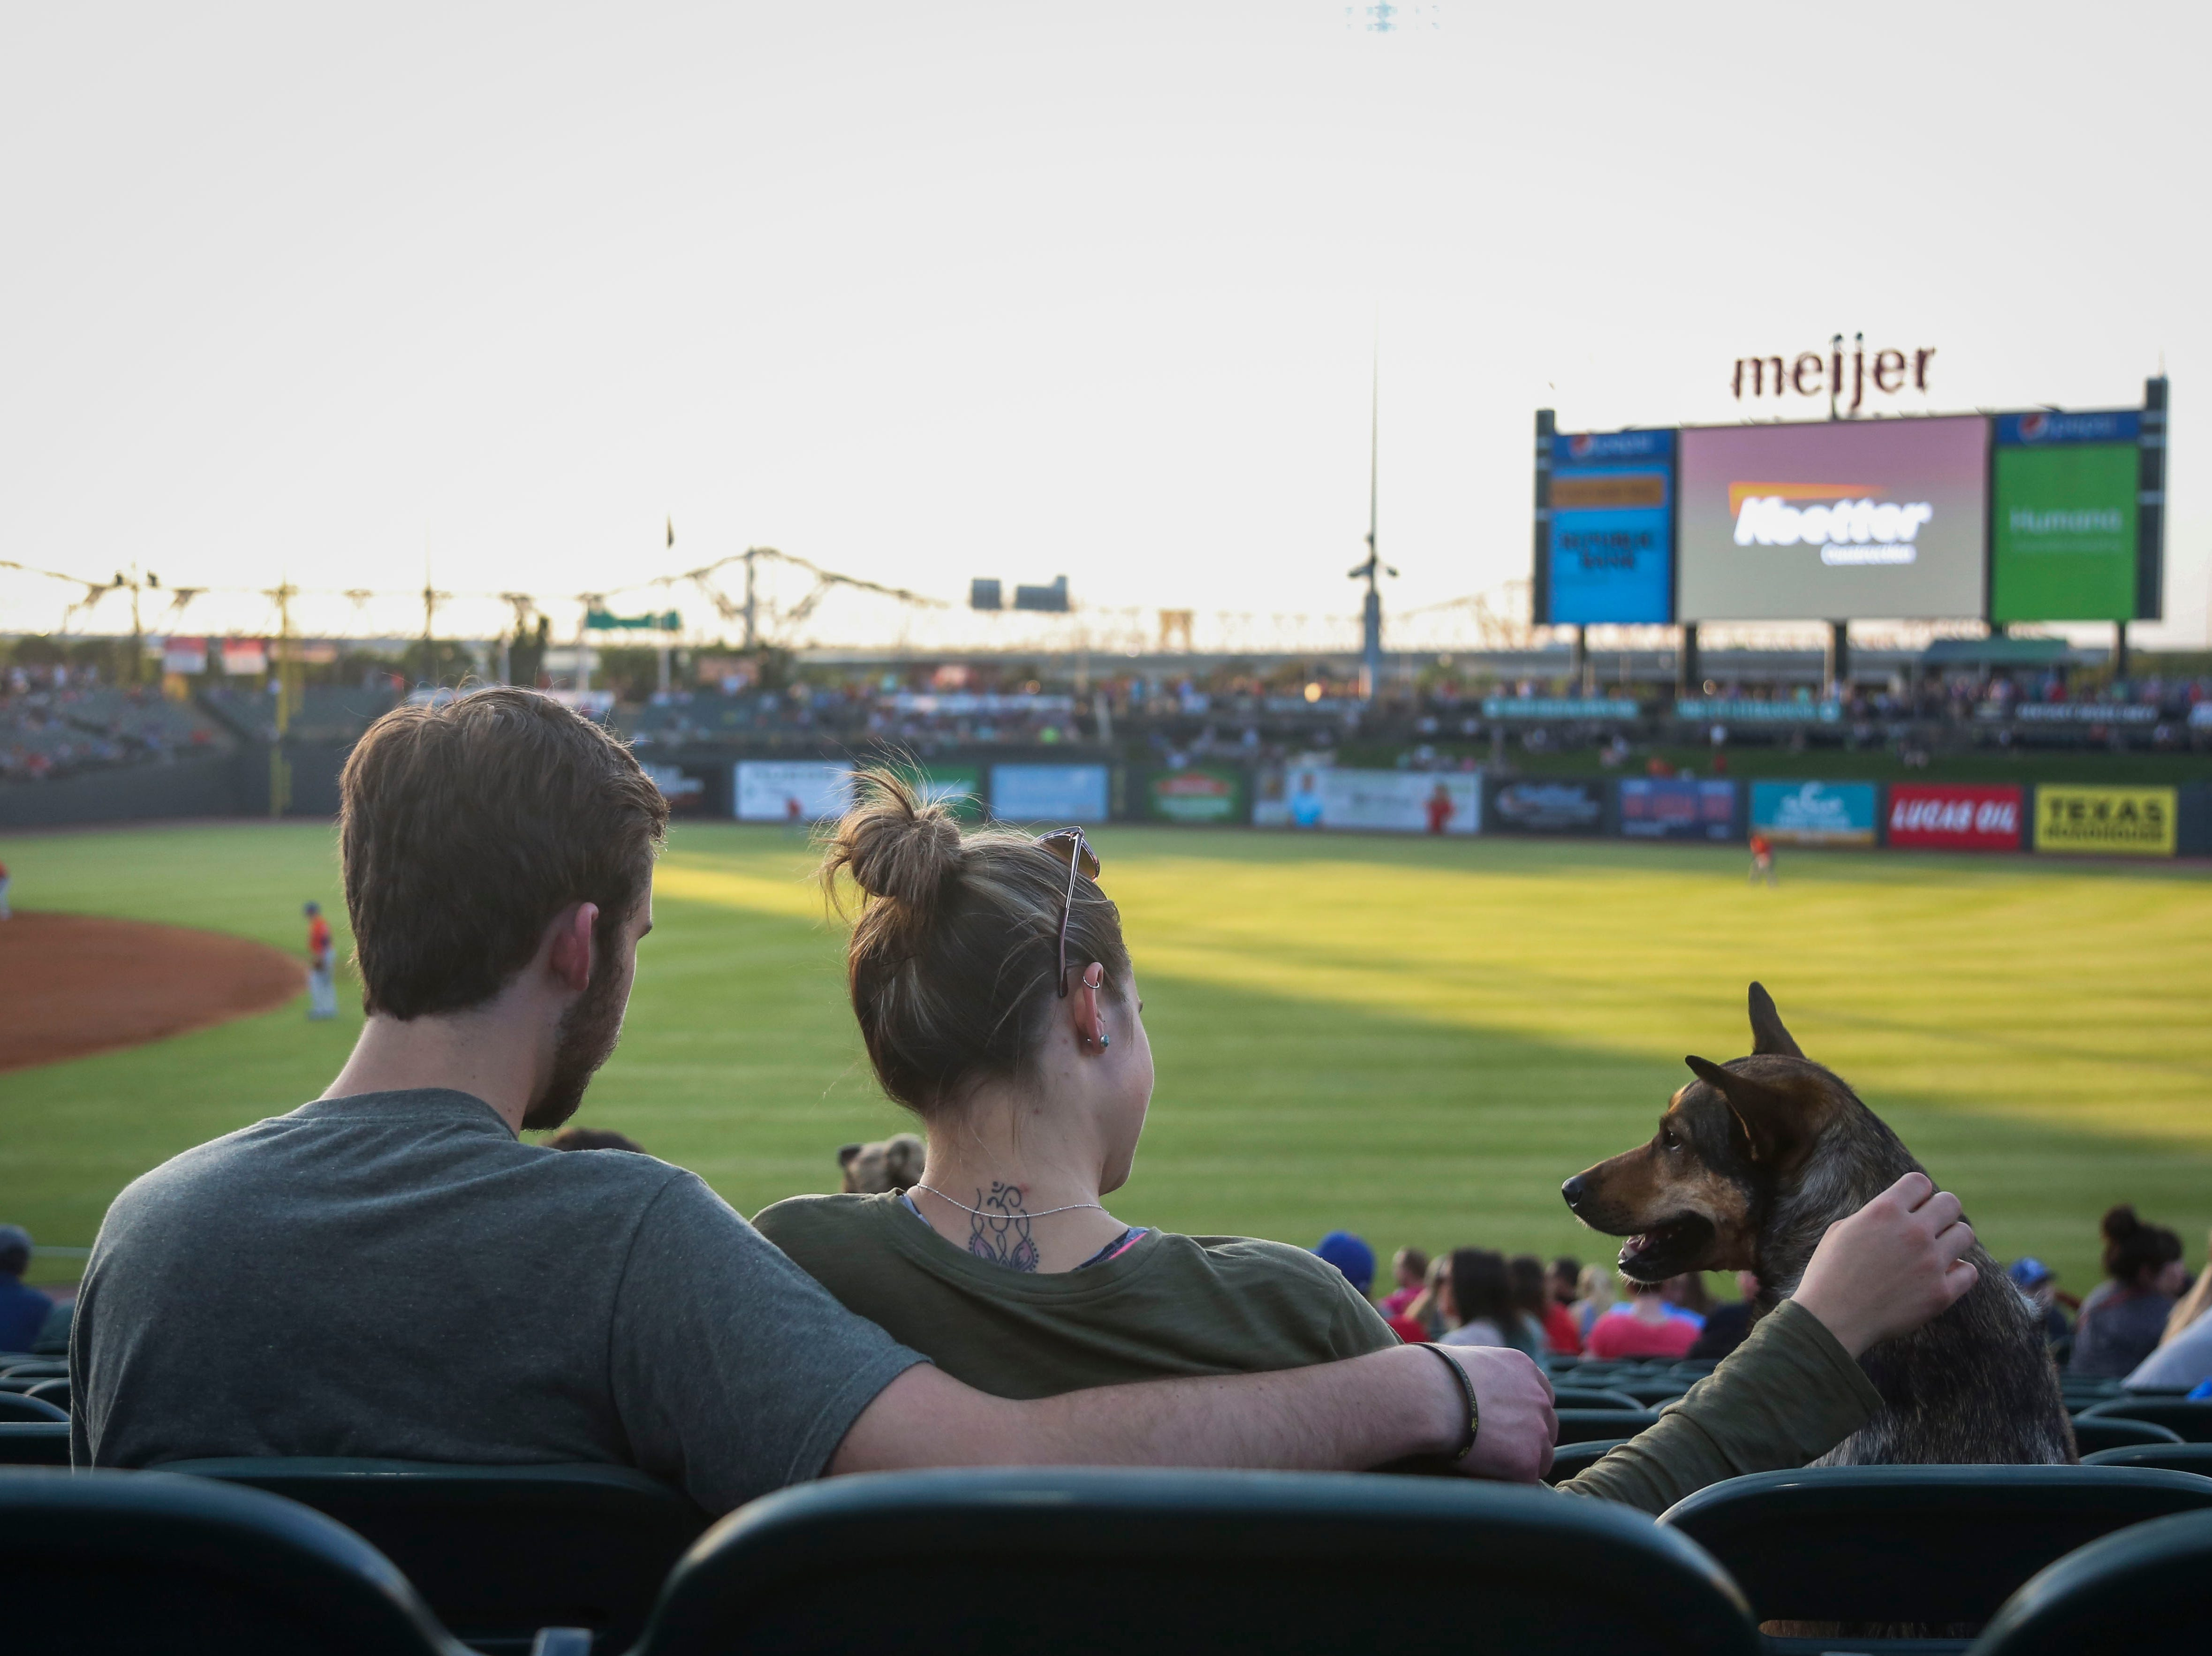 Chris Mattingly, left, Savanah Ruhs, middle, and Nova watch the Louisville Bats v. Syracuse Mets game during Dog Day Nights at Louisville Slugger Field in downtown Louisville, Ky. on Tuesday, May 7, 2019.